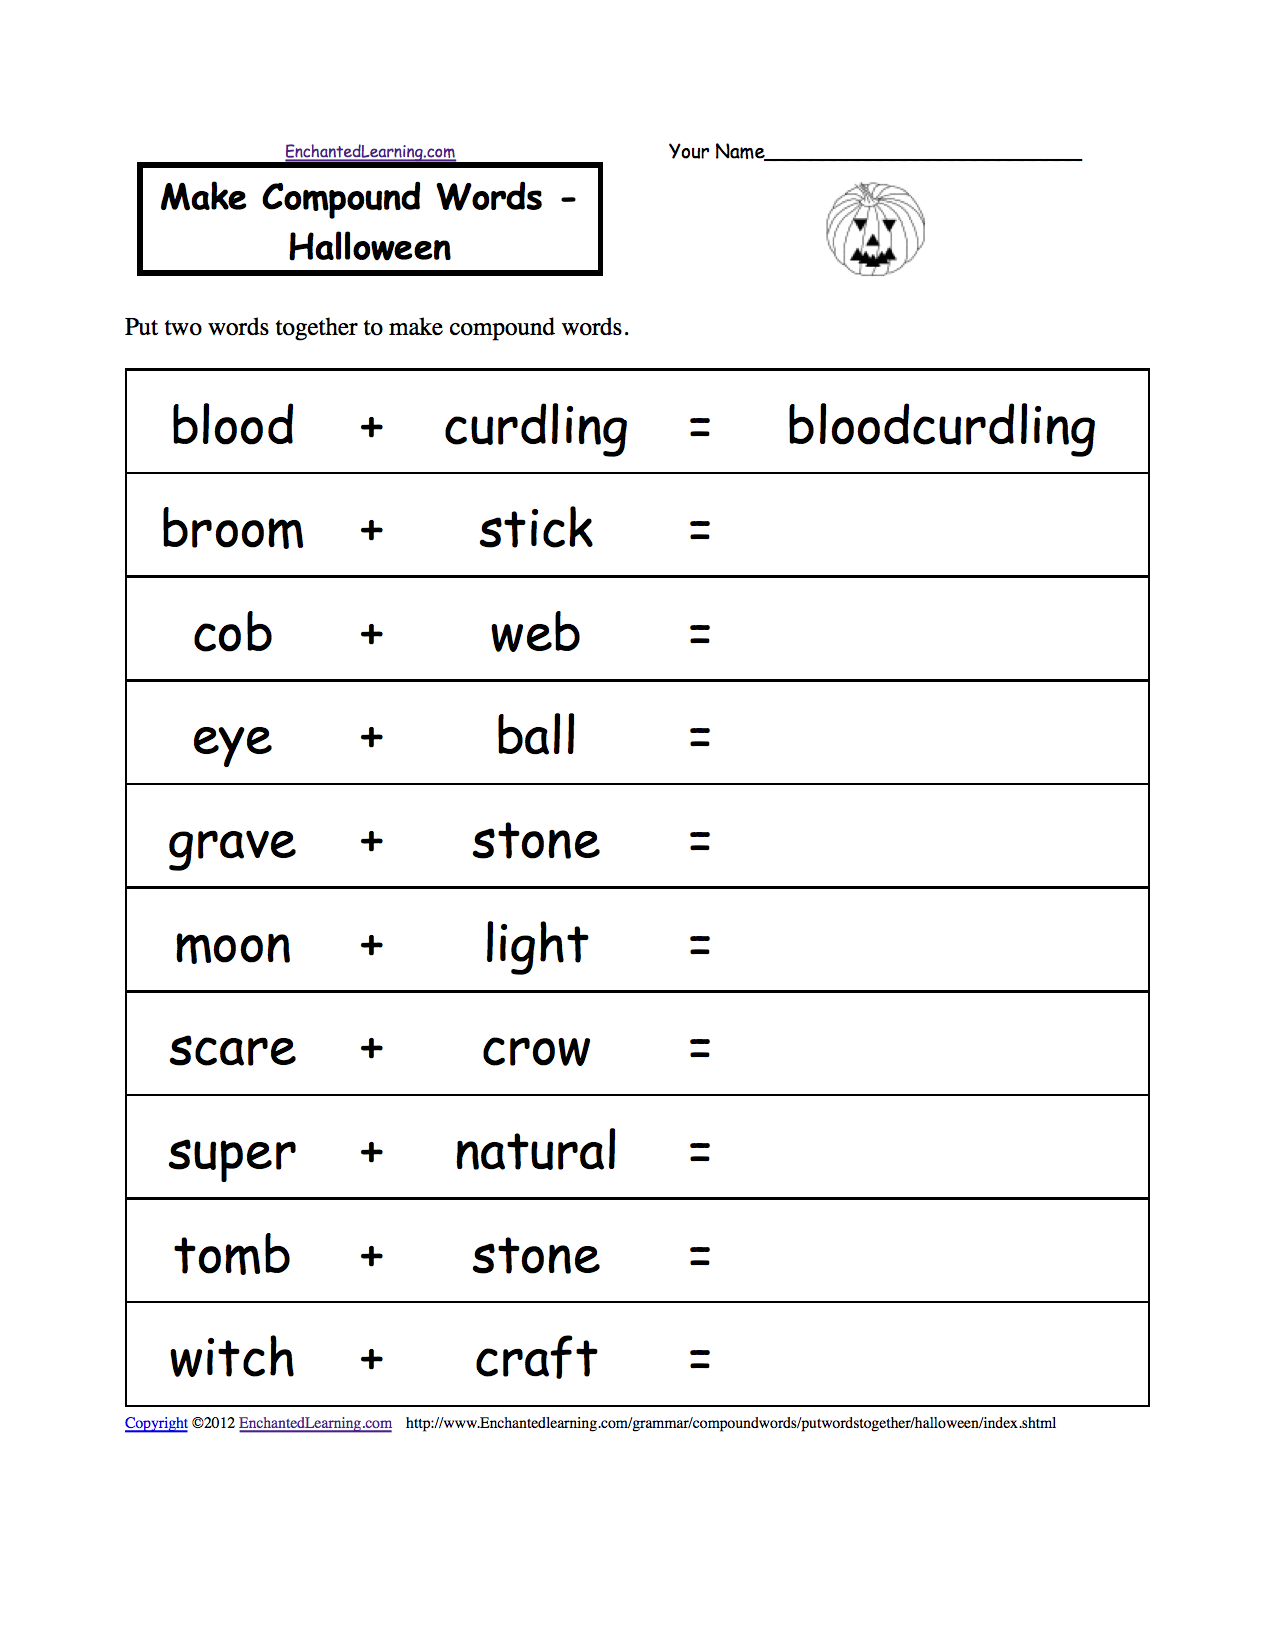 Worksheet Kindergarten Compound Words make compound words printable worksheets enchantedlearning com words